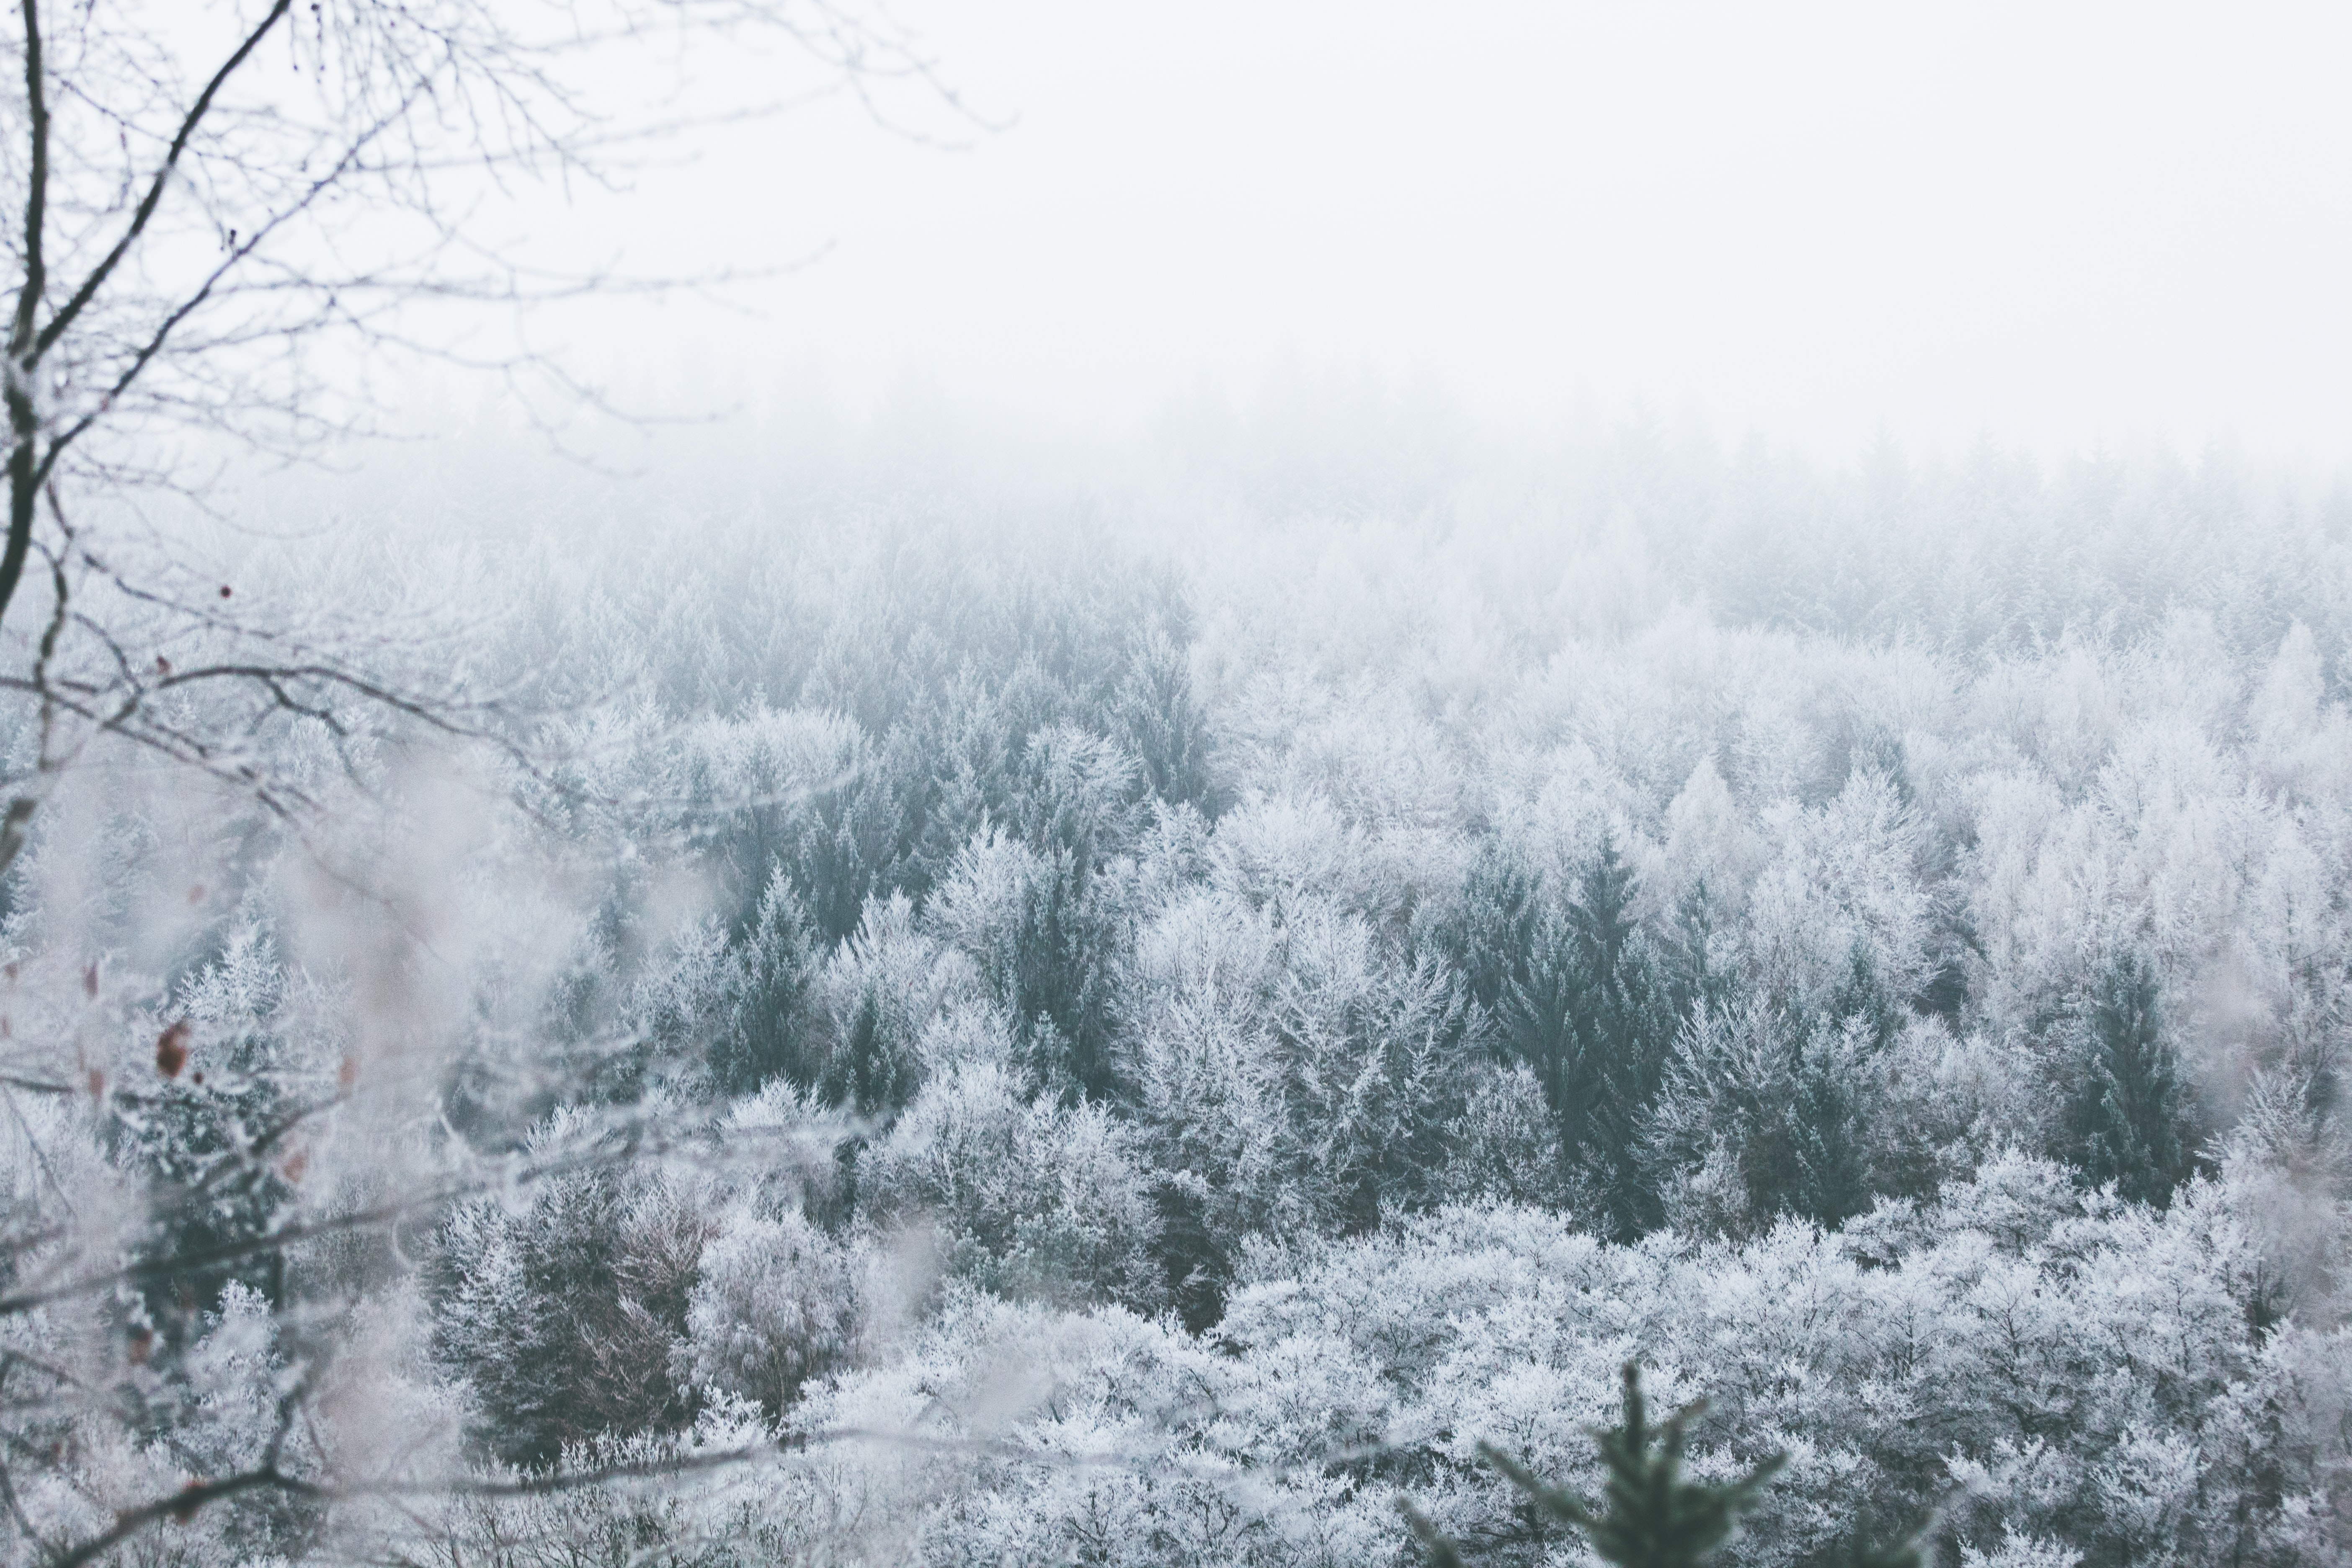 A look down onto the snowy tree tops in a forest